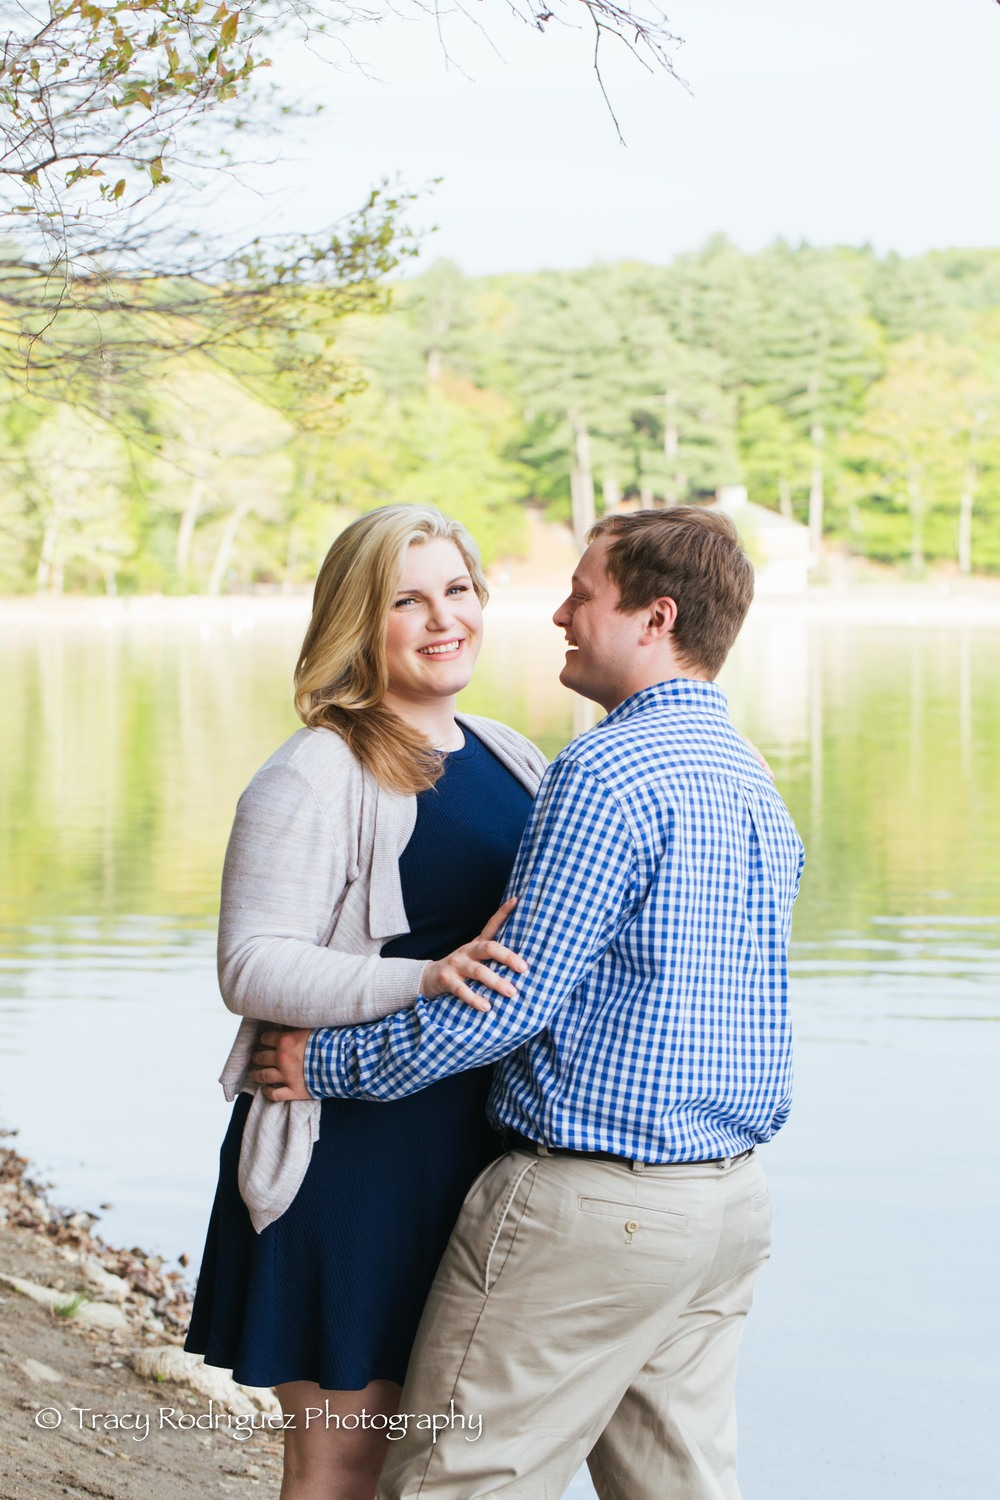 TracyRodriguezPhotography-Engagement-LowRes-30.jpg